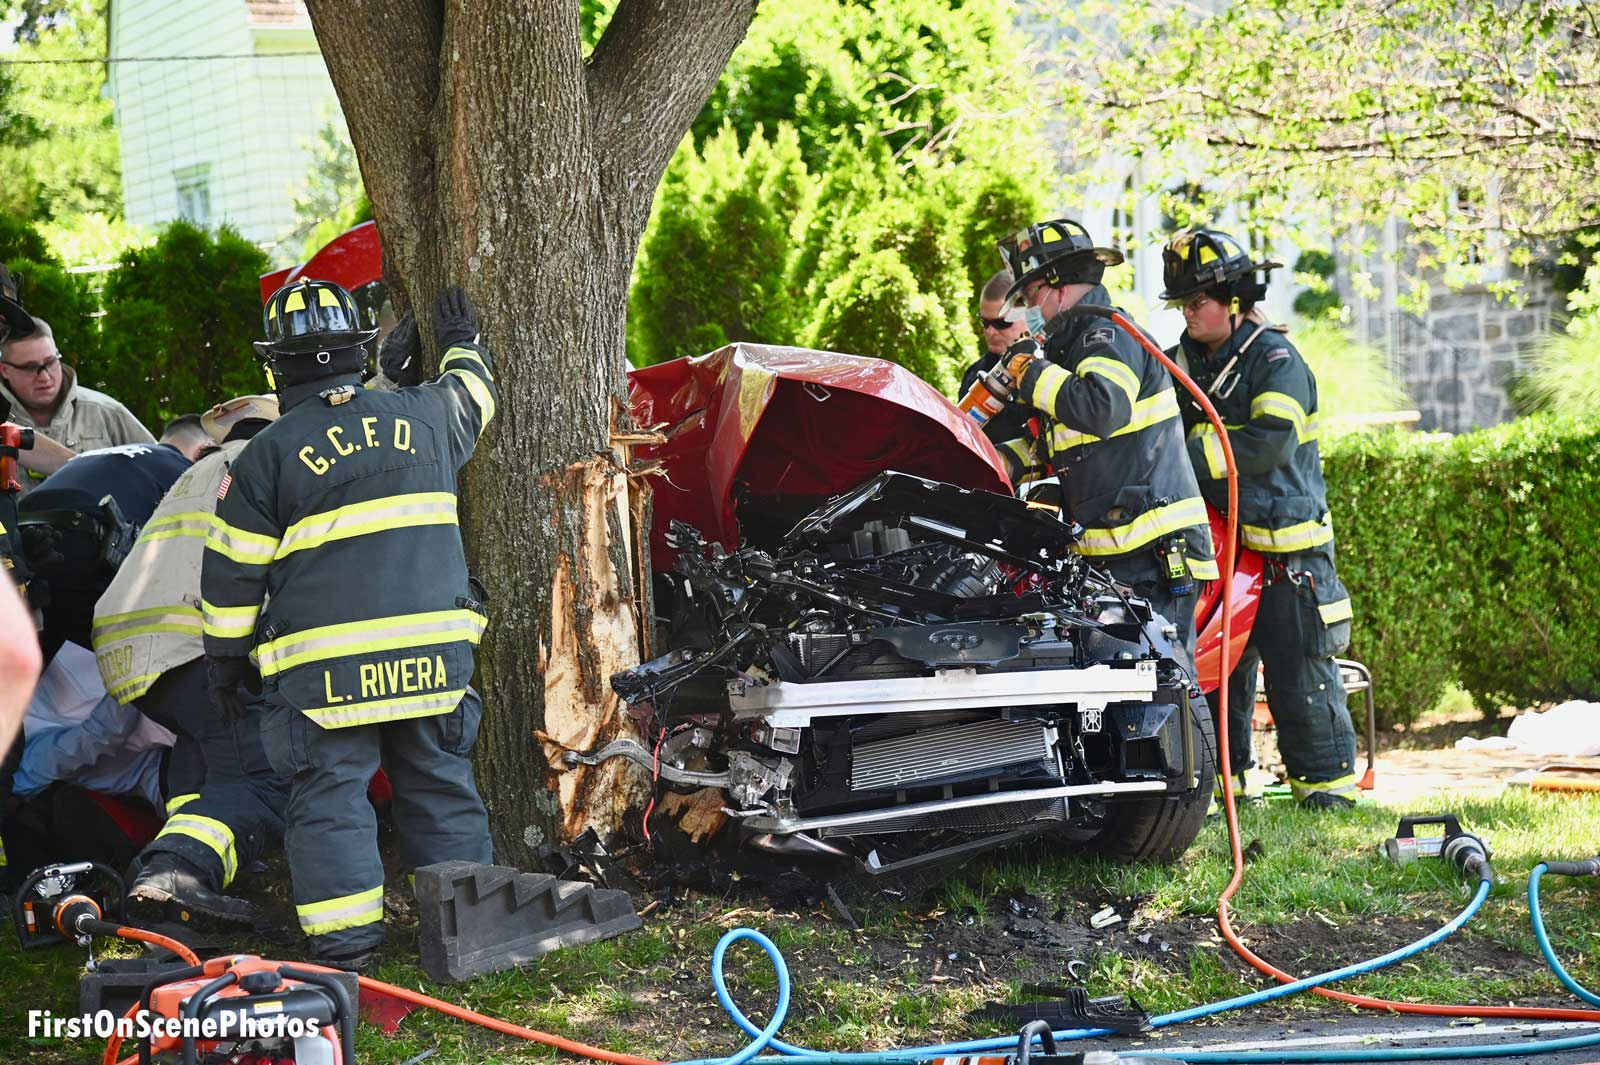 Firefighters at the scene of a significant vehicle crash